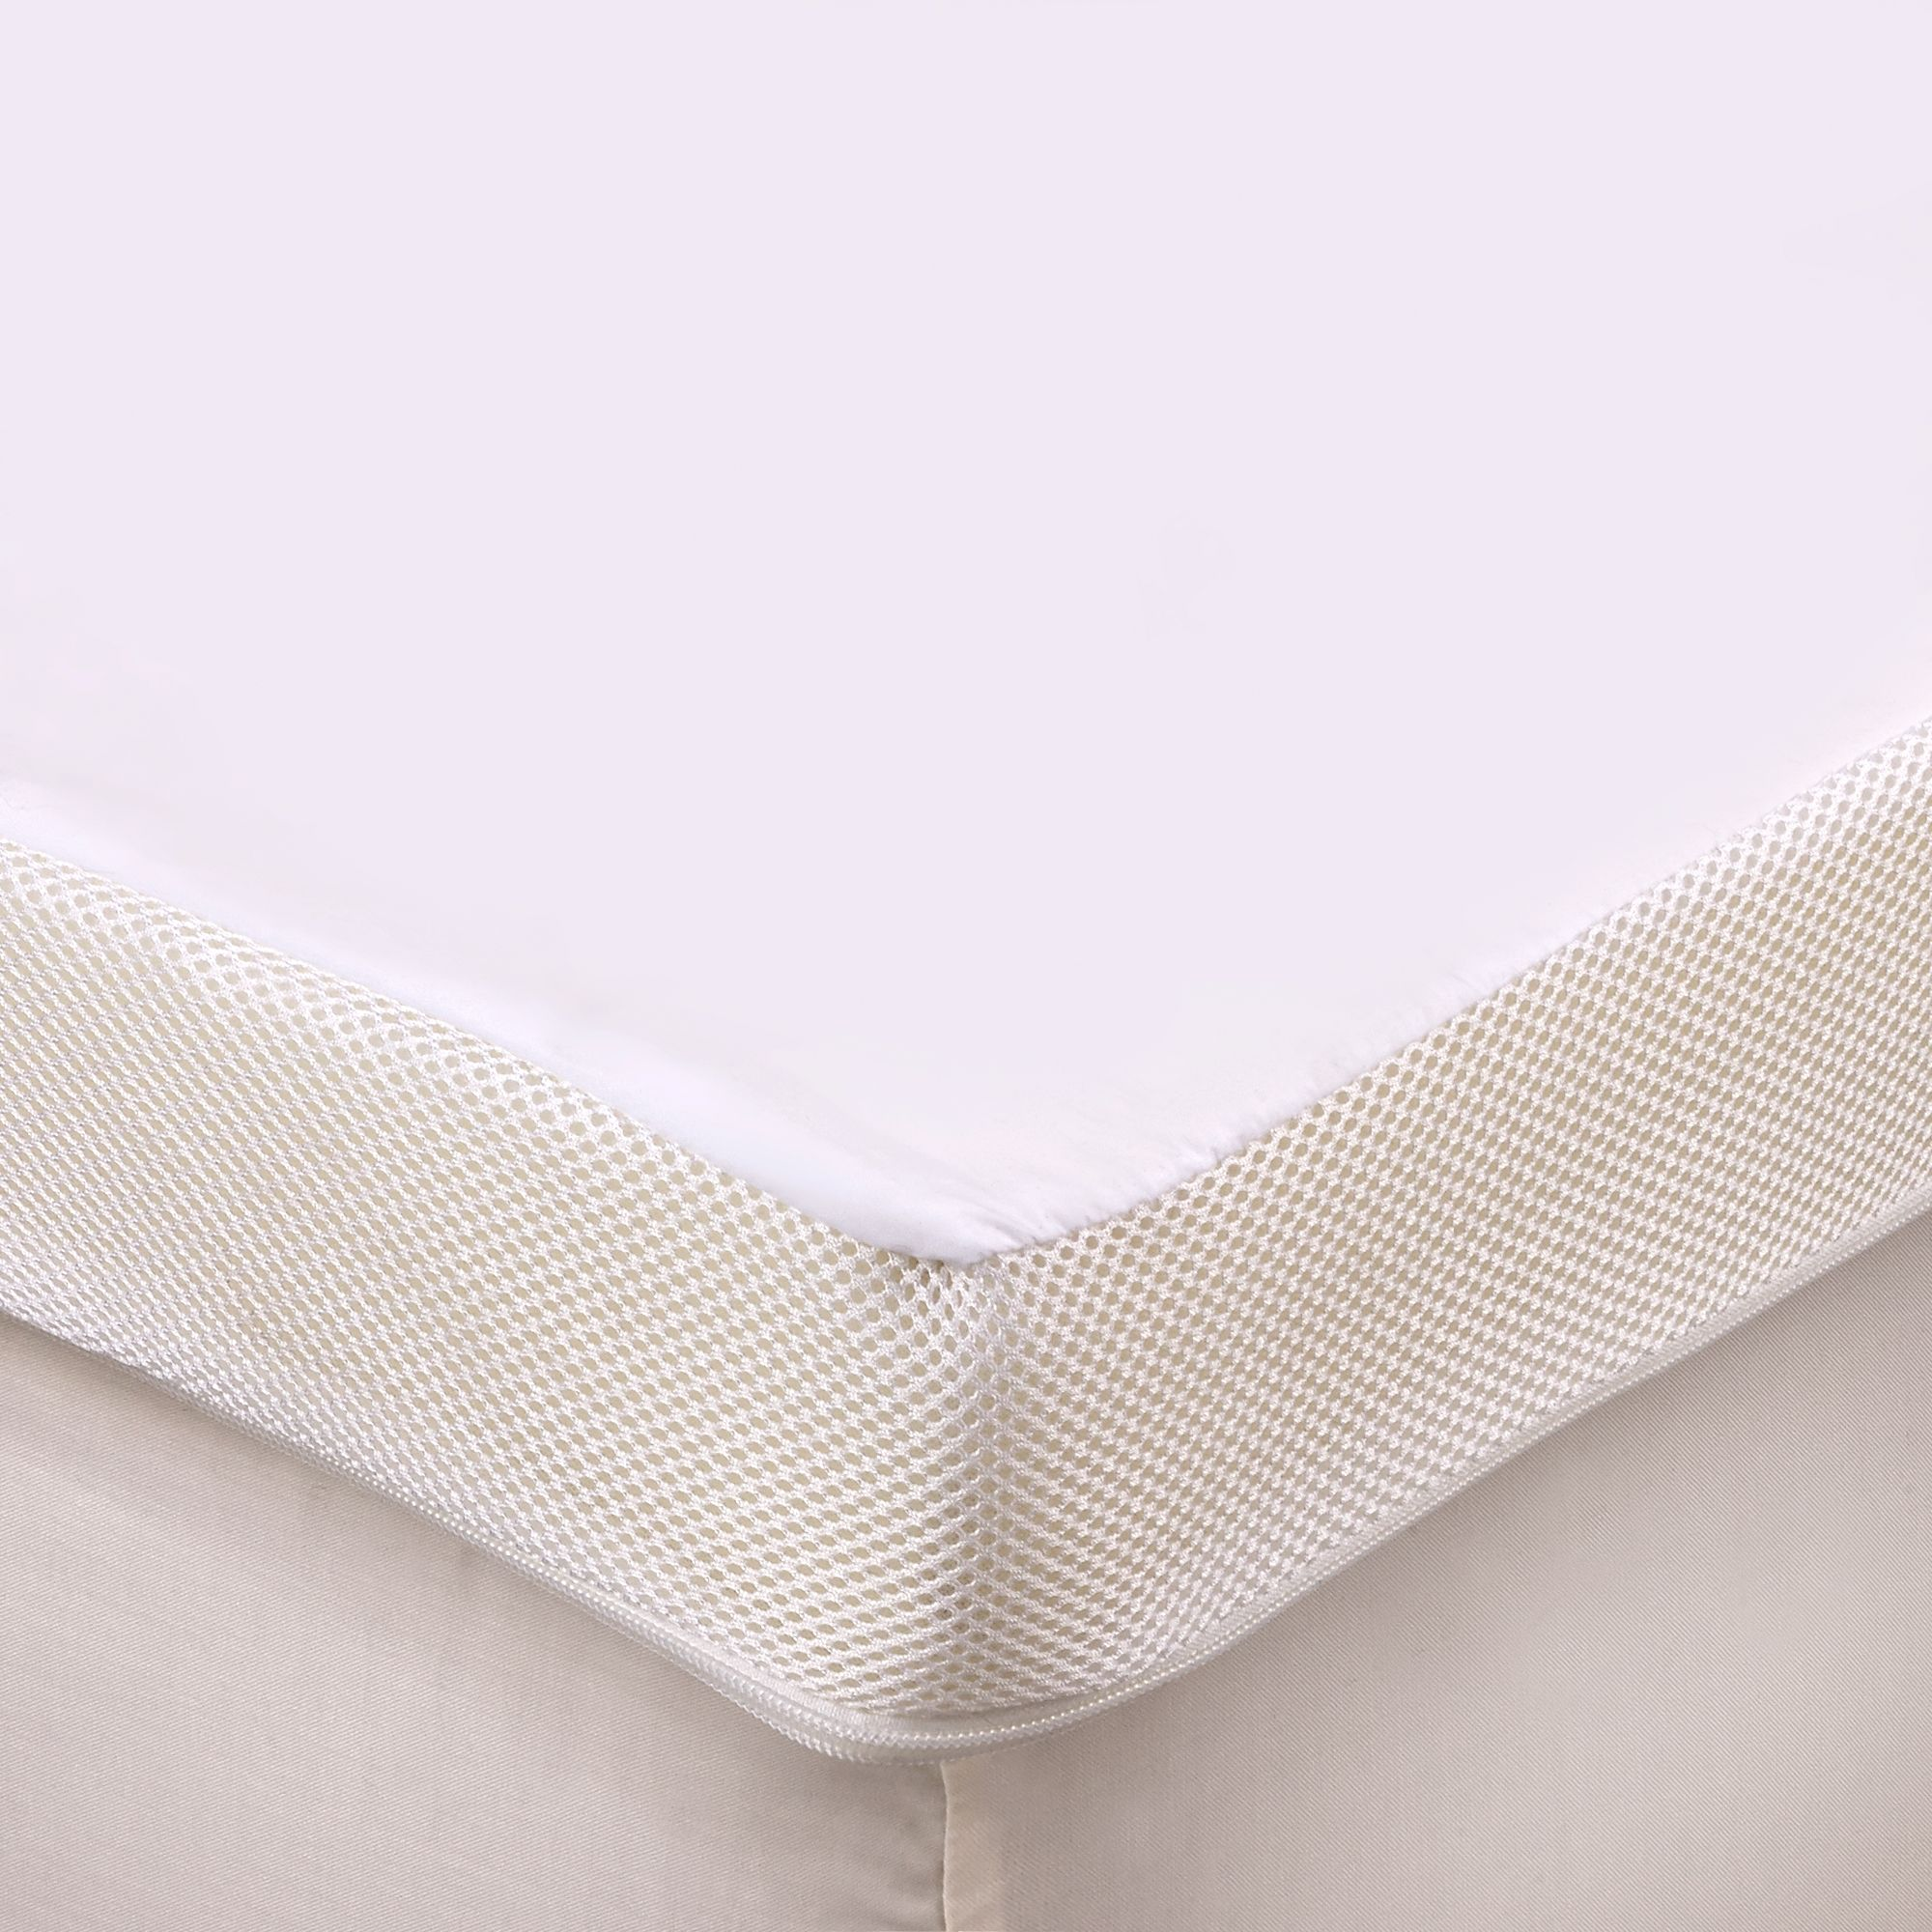 double bed top view. Mattress Pads, Toppers, Covers For Double Bed Top View 146hul